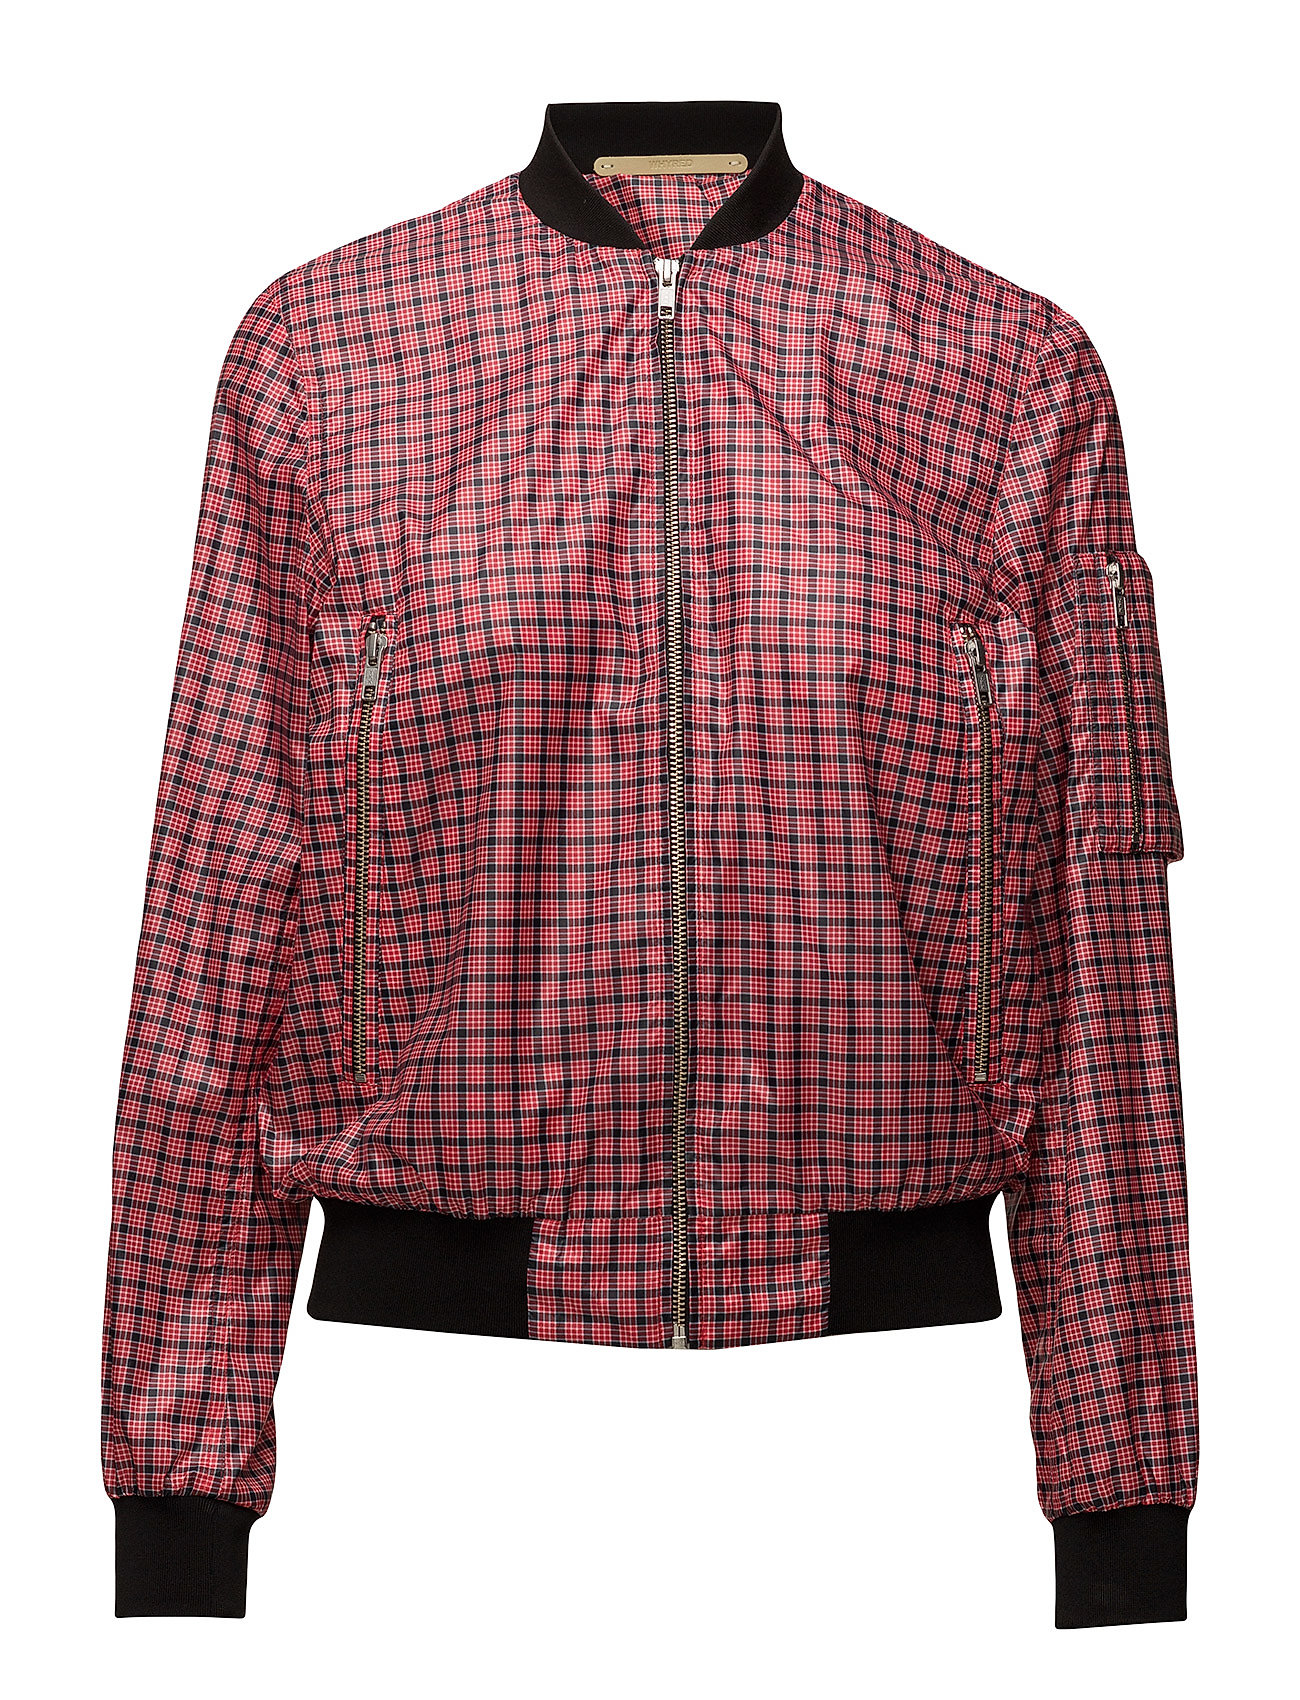 Whyred JANNIKE PRINT - RED CHECK